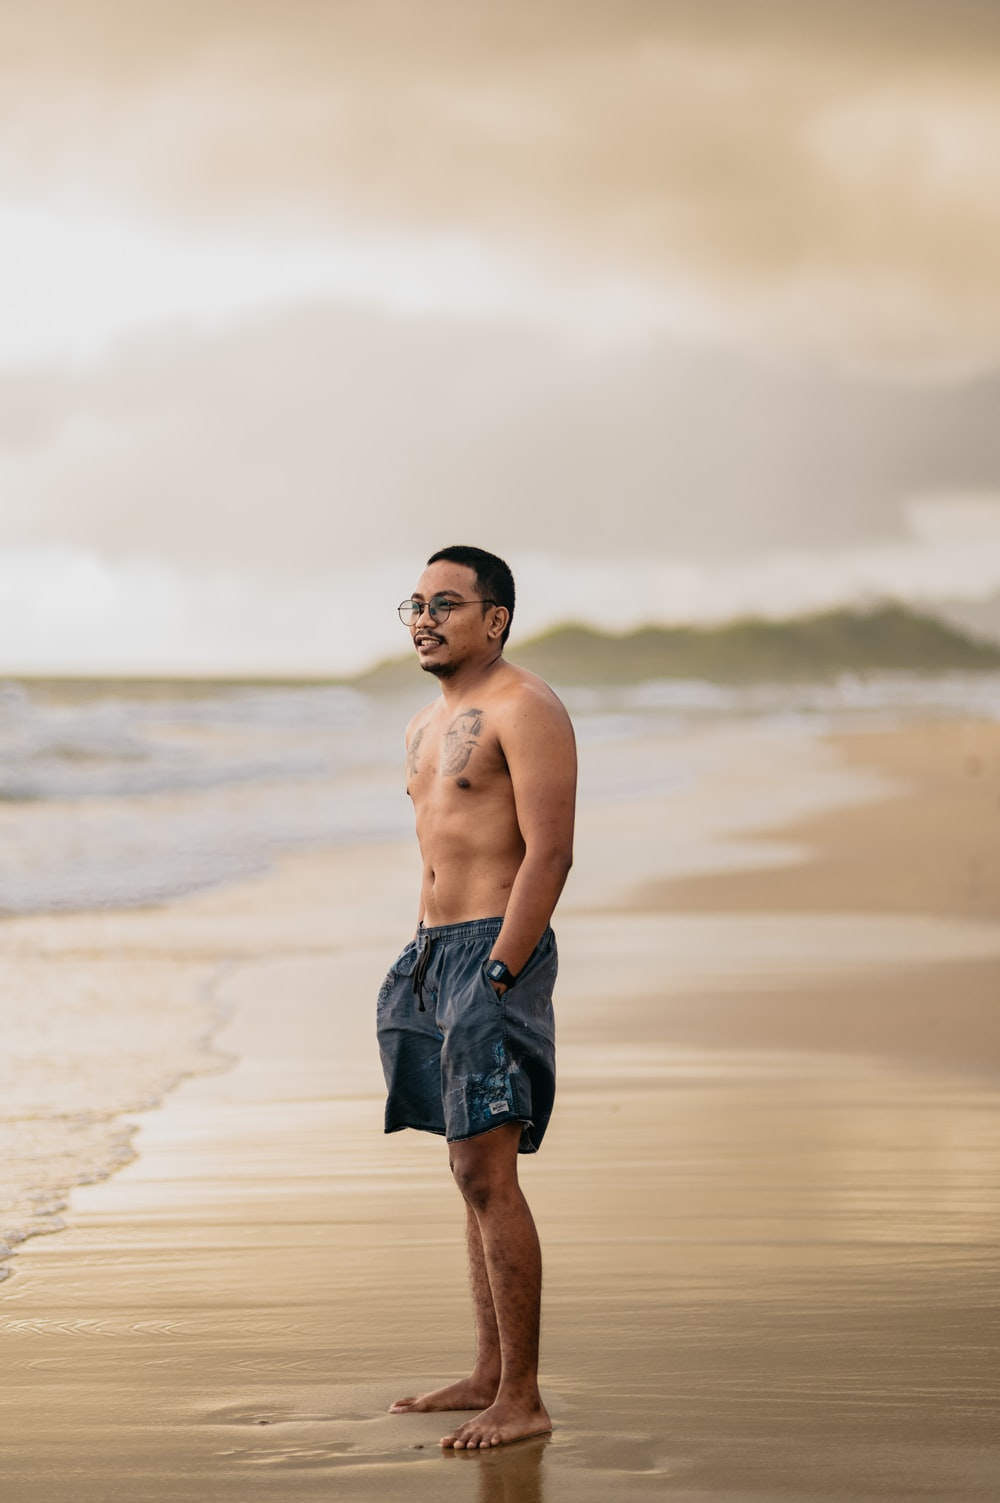 topless boy in blue shorts standing on beach during daytime